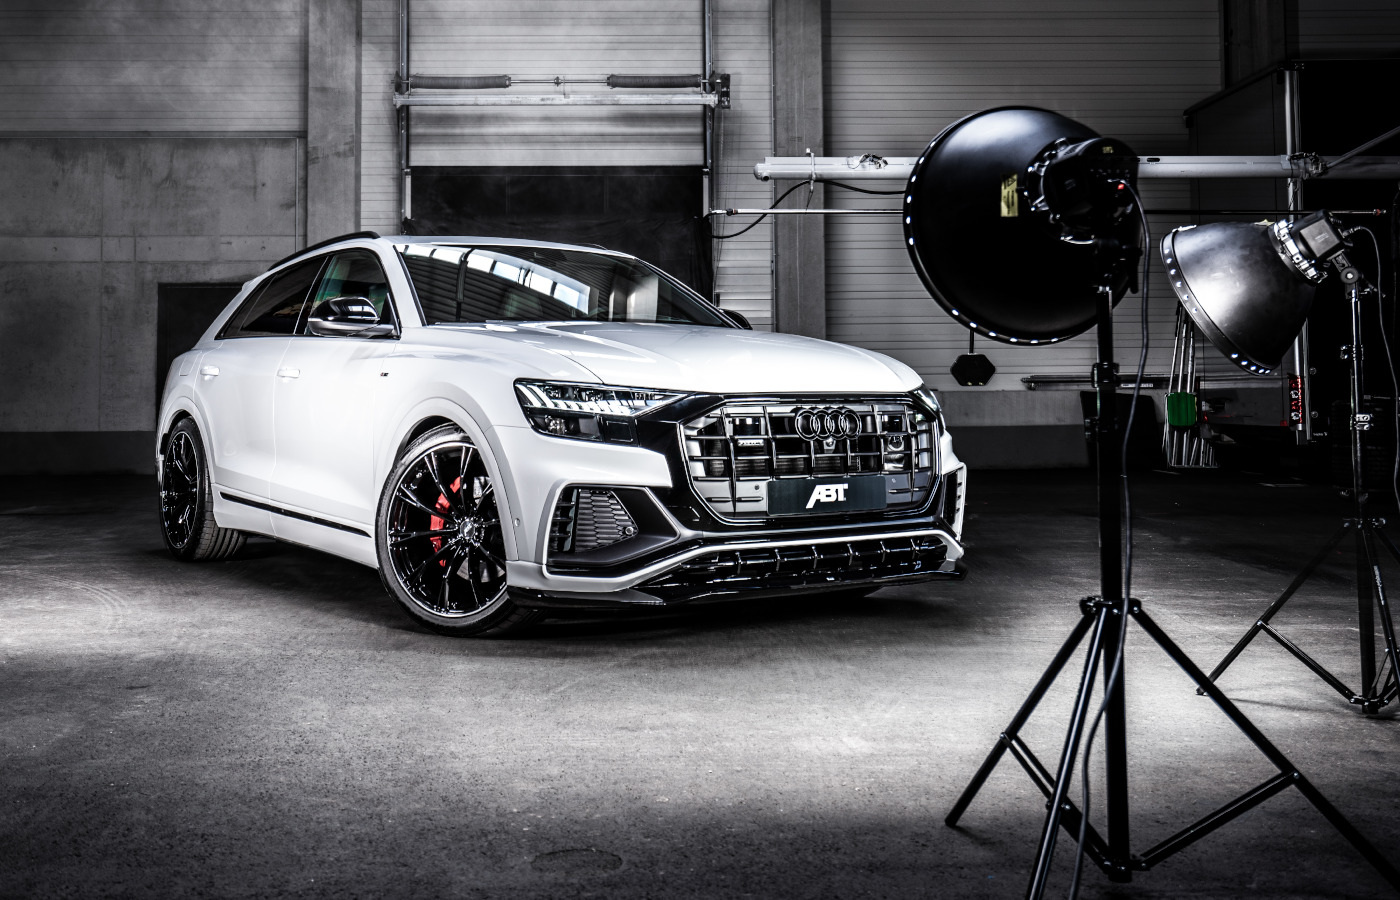 The AutoTopNL team of reviewers has laid its hands on a rare and expensive Audi RSQ8-R. ABT Sportsline said there would only be 125 such vehicles, each packing 740 PS (730 hp / 544 kW) along with 920 Nm (678 lb-ft) of torque.